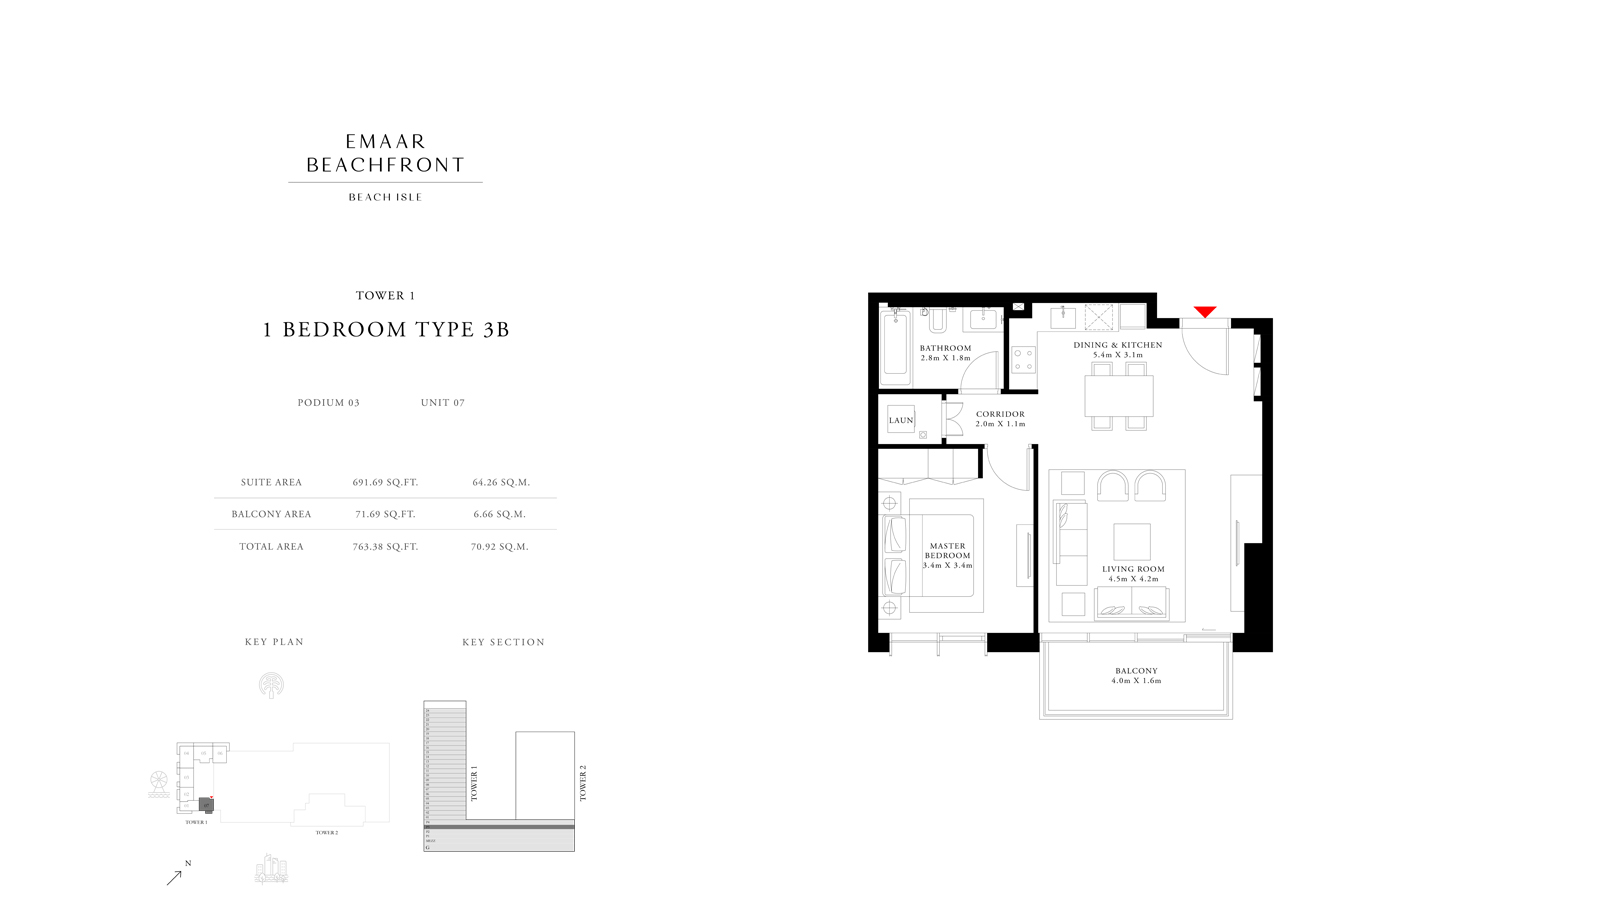 1 Bedroom Type 3B Tower 1, Size 763    sq. ft.